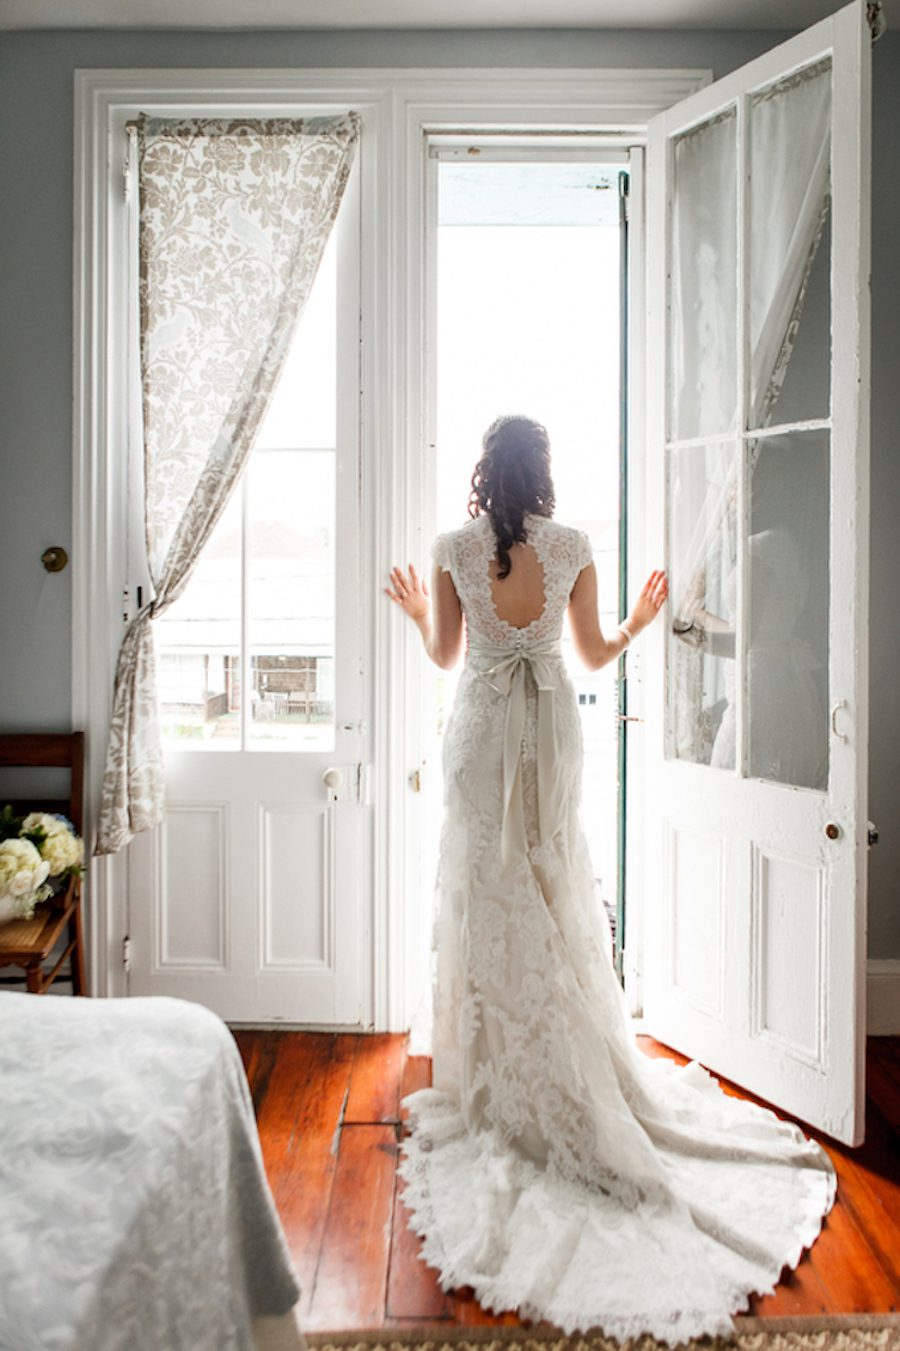 Bosch_Wedding_Bloomsbythebox_KimCraven_10 Charming Cape May Wedding Featured on Classic Bride Blog